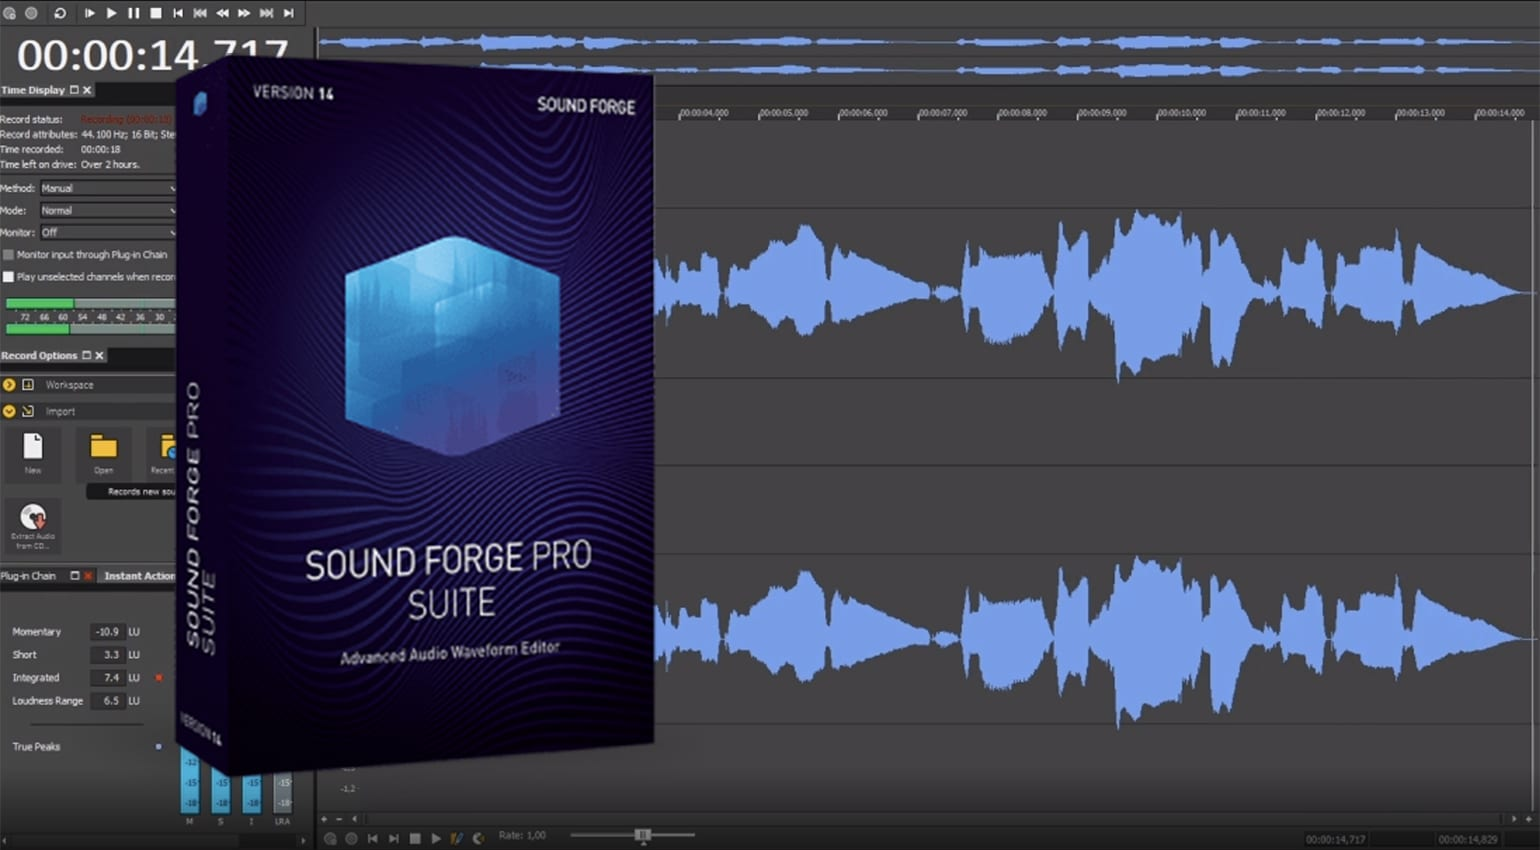 Magix Sound Forge Pro 14 and Suite are here – what's new? - gearnews.com